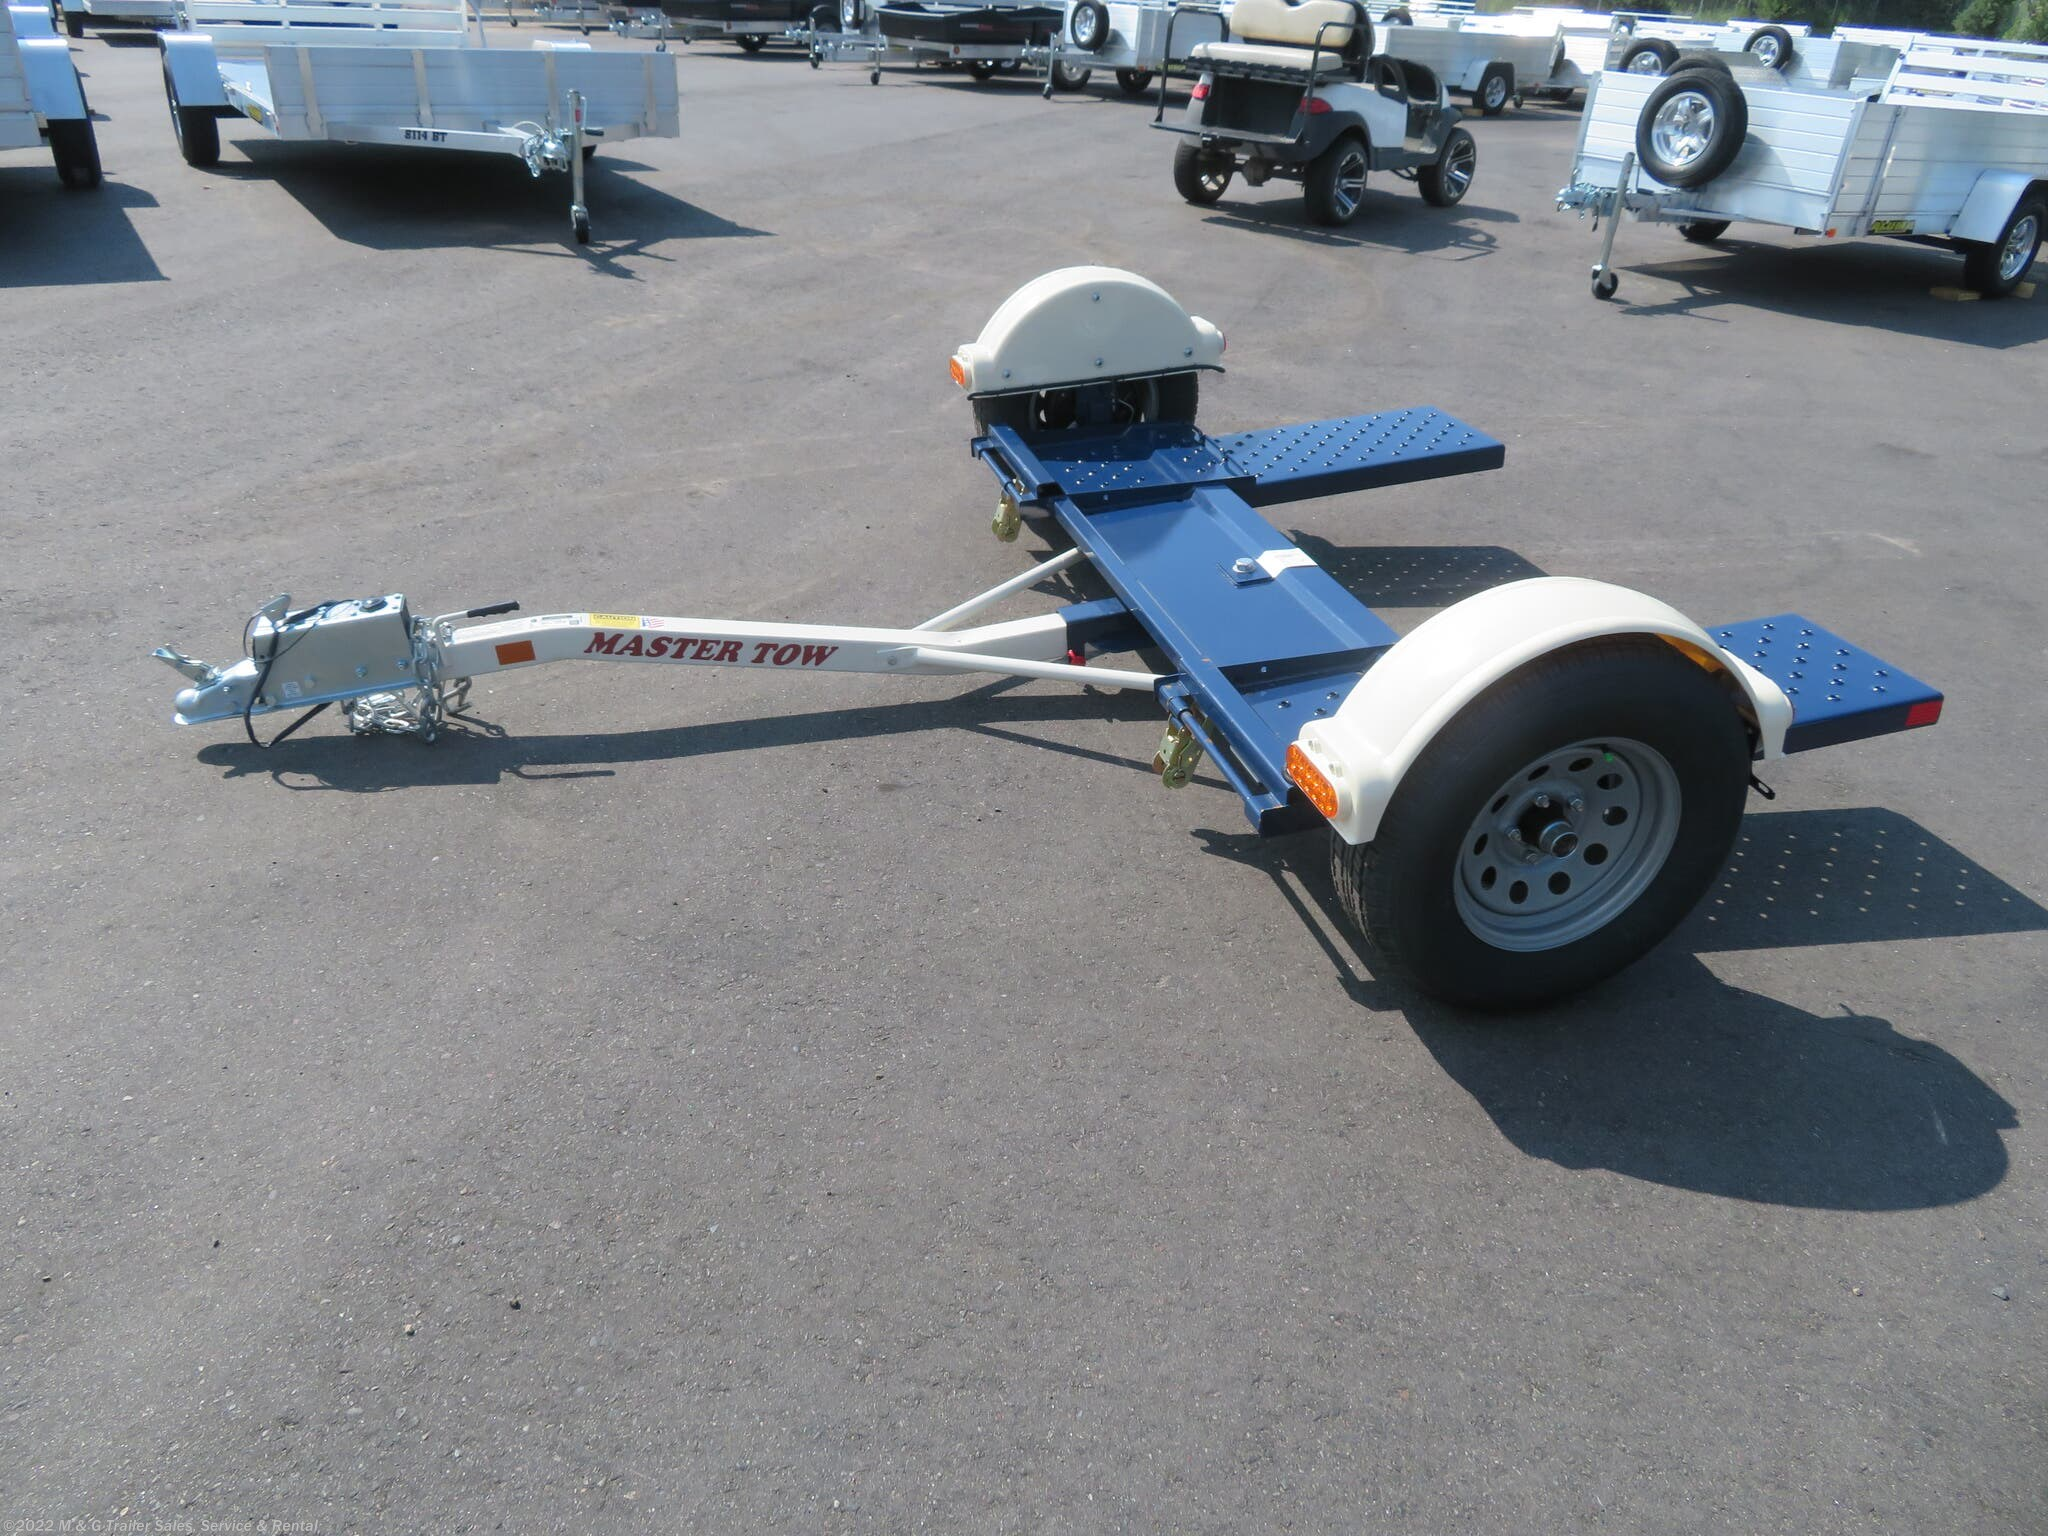 2019 Master Tow Tow Dolly Electric Brakes - Stock #138564